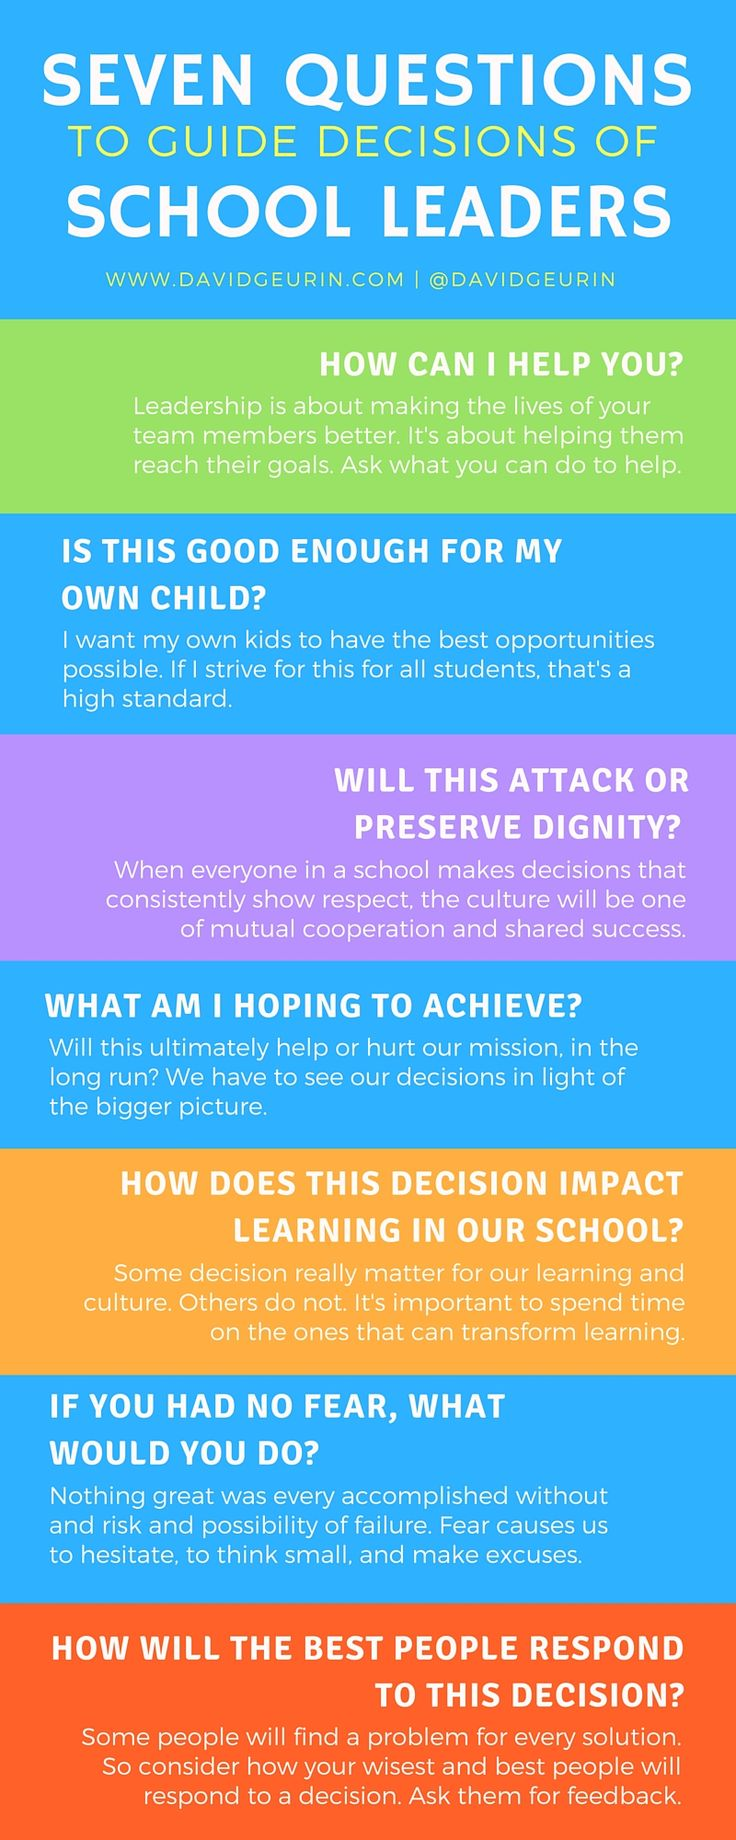 7 Questions To Guide Decisions Of School Leaders